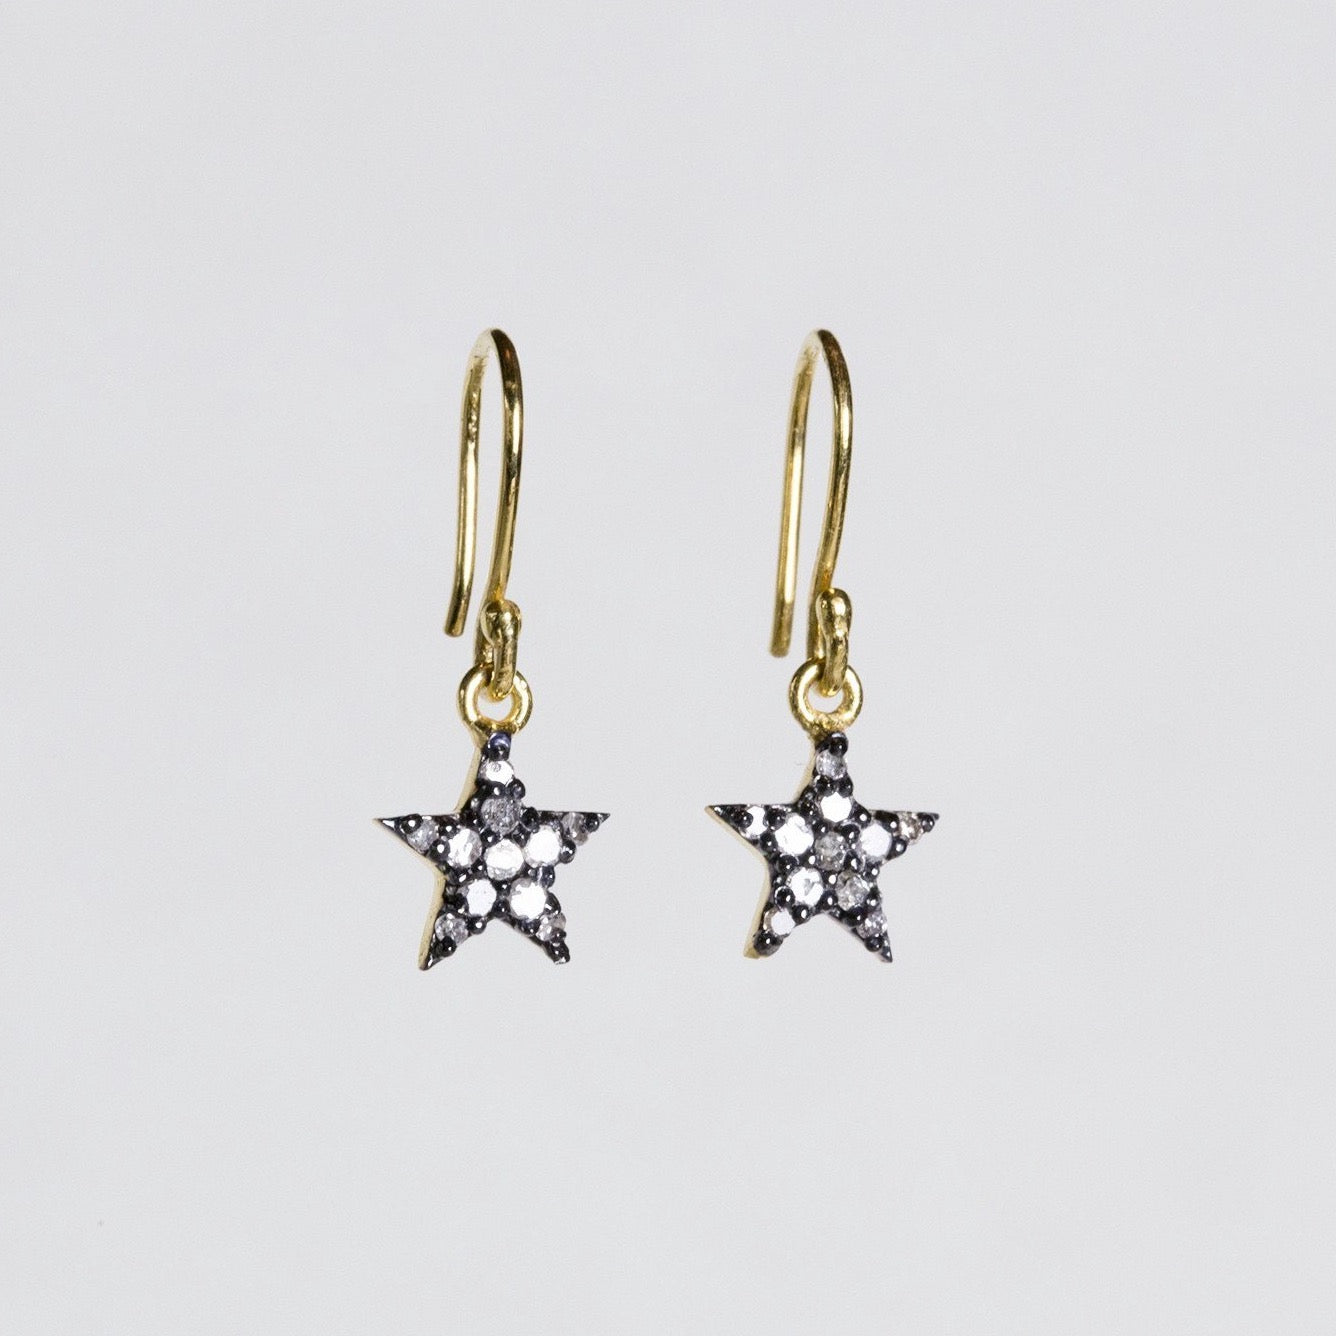 felt Affordable Diamond Range star drop earrings